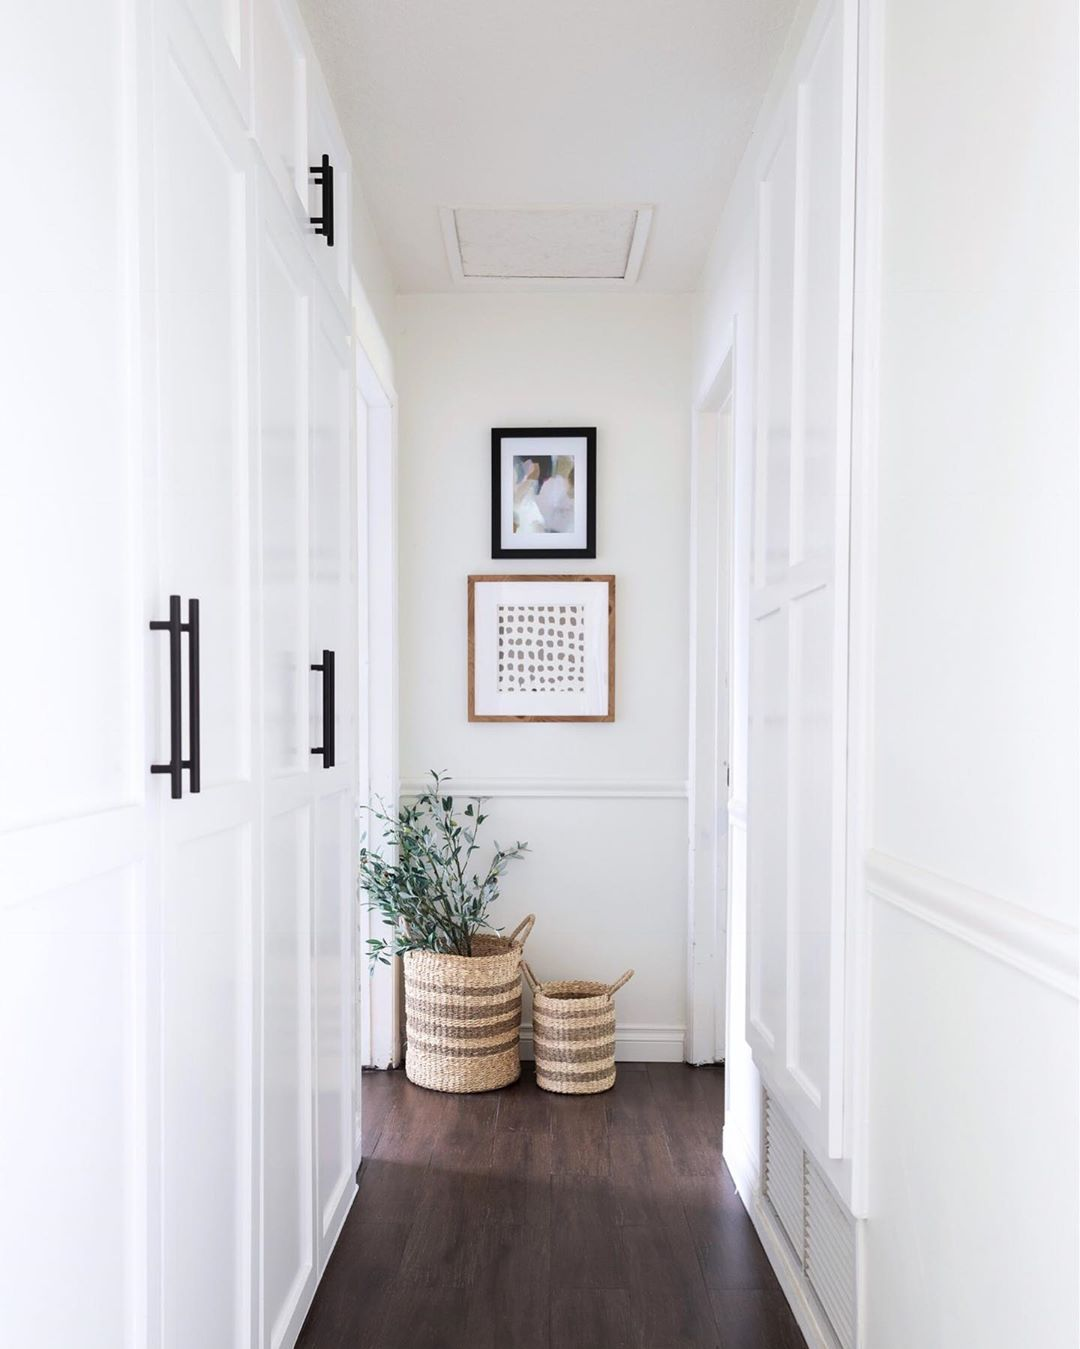 "KATIE STAPLES on Instagram: ""Gave our hallway a mini makeover with a few things I had around the house! I'm thinking an art lamp above the prints would be the perfect…"" #hallway"